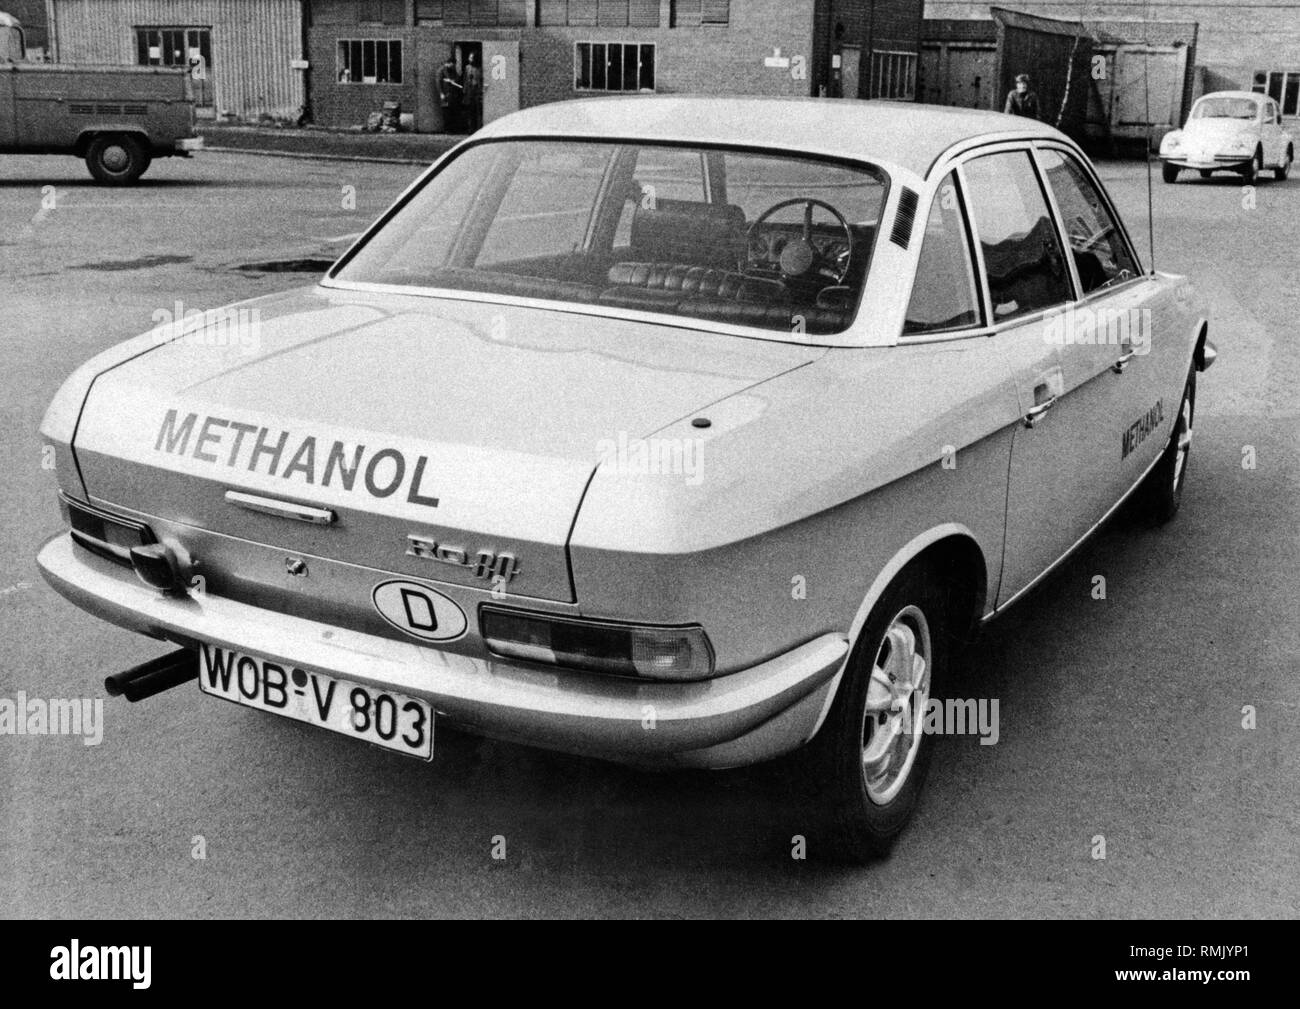 At the height of the oil crisis, many carmakers experimented with alternative drivetrains. VW conducted research with methanol drive on a NSU Ro 80. - Stock Image